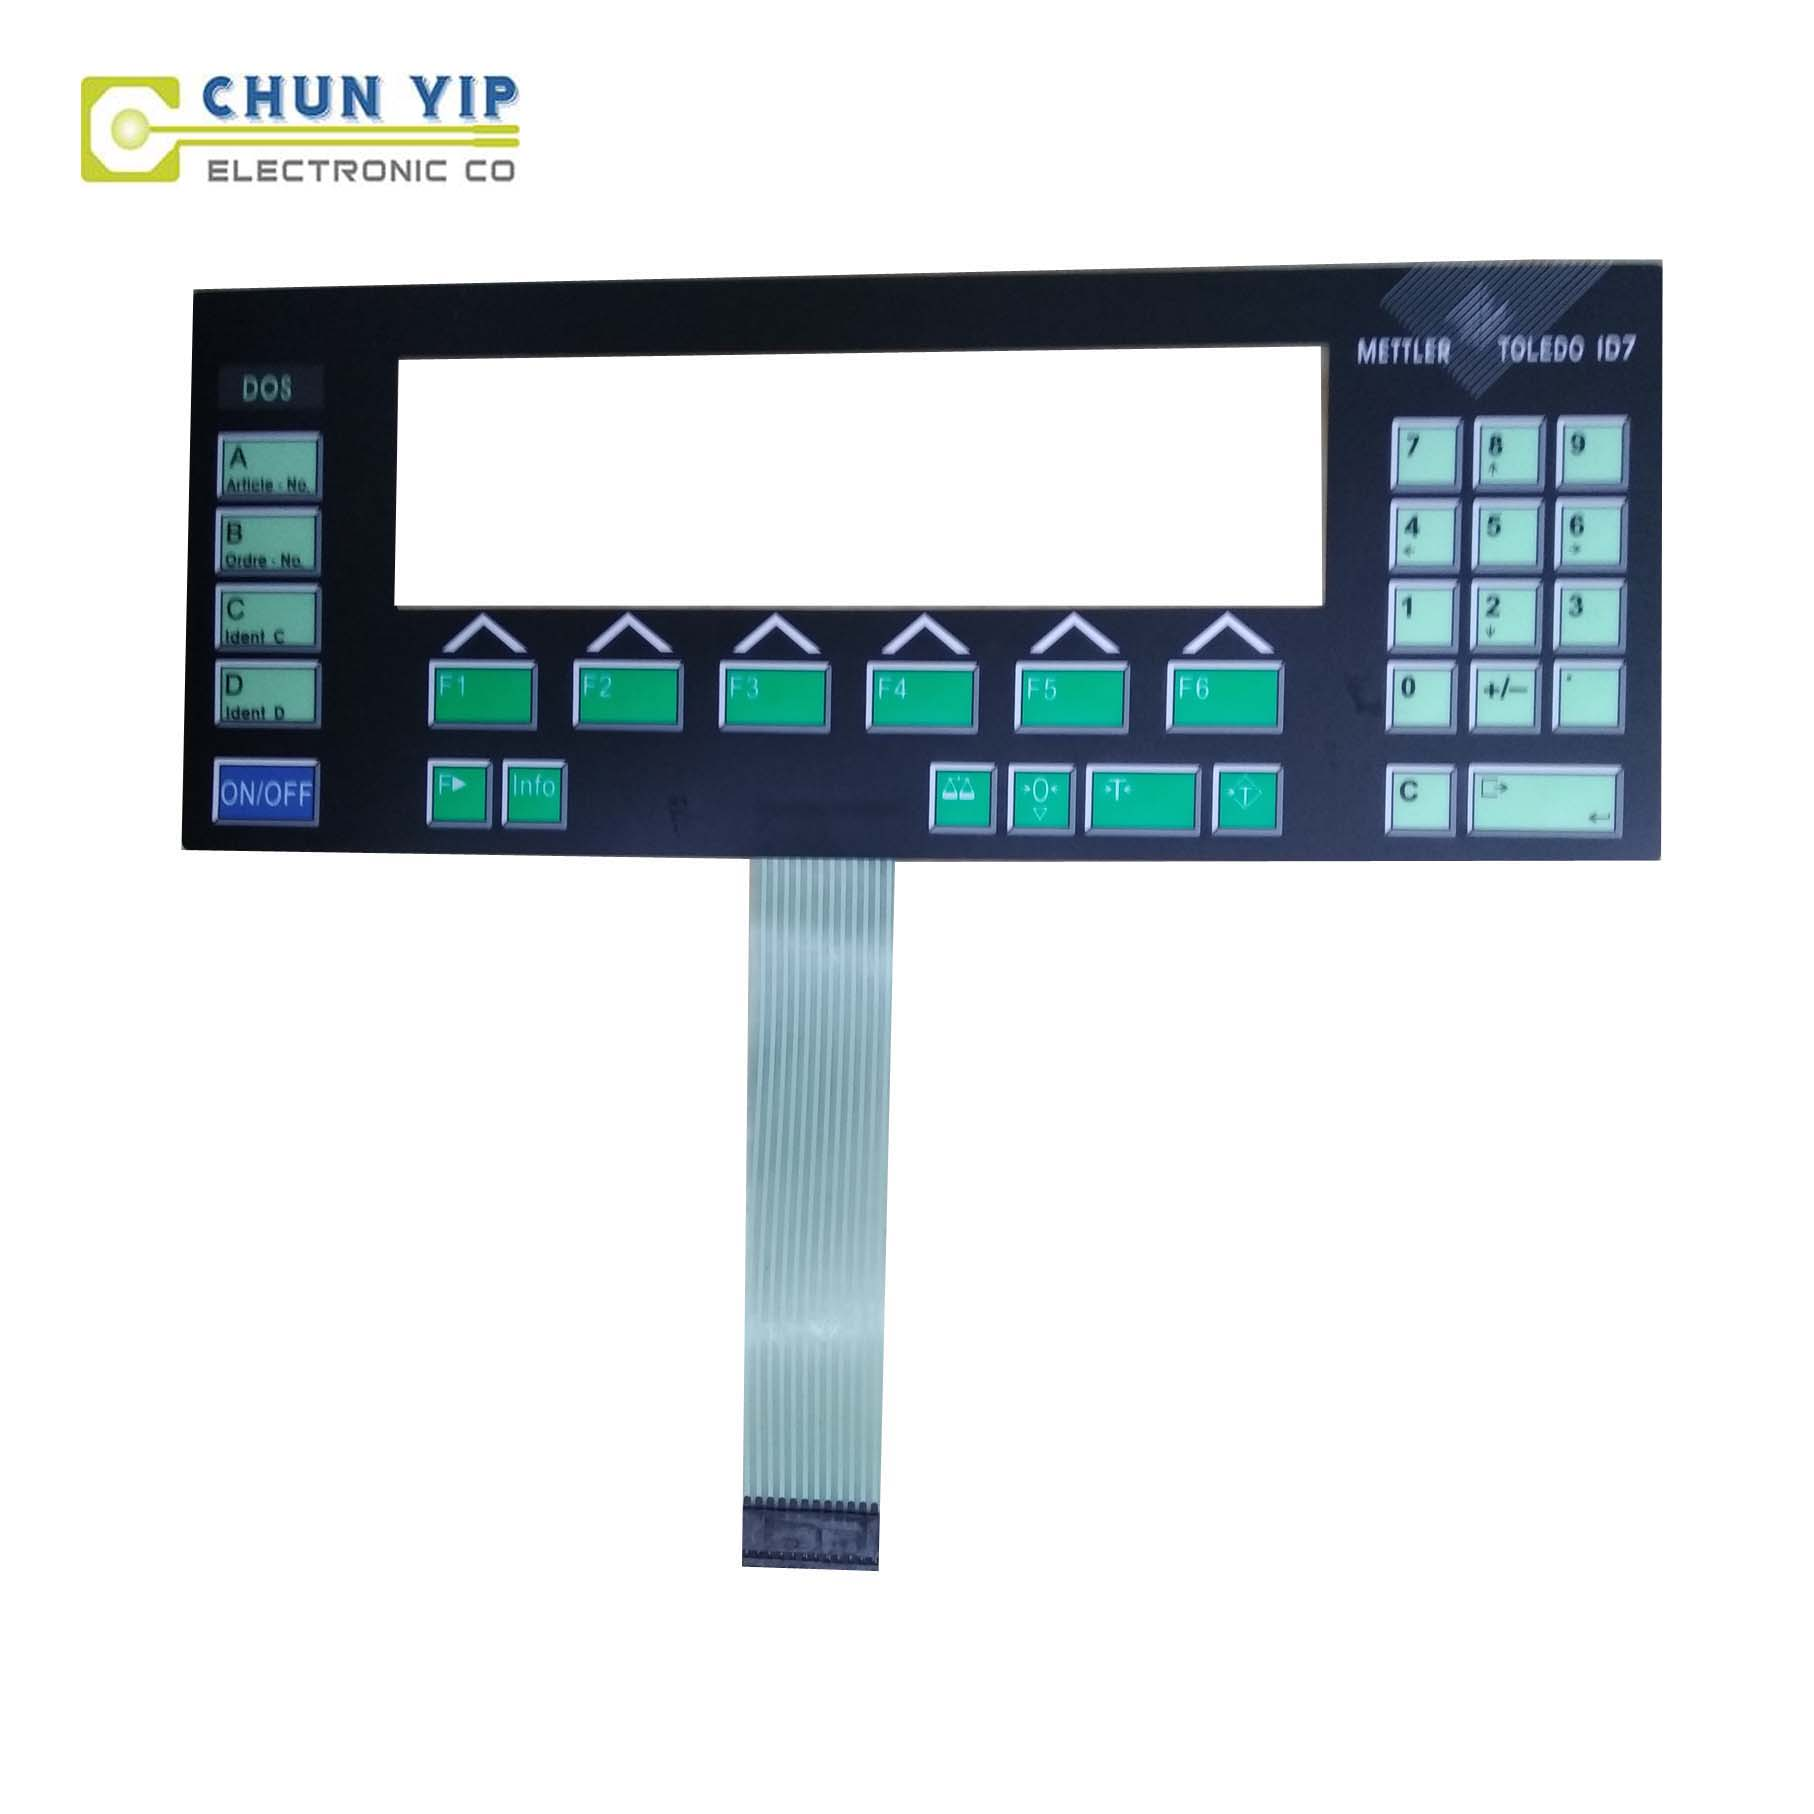 Prepainted Roofing Sheet 16 Key Membrane Switch Keyboard -